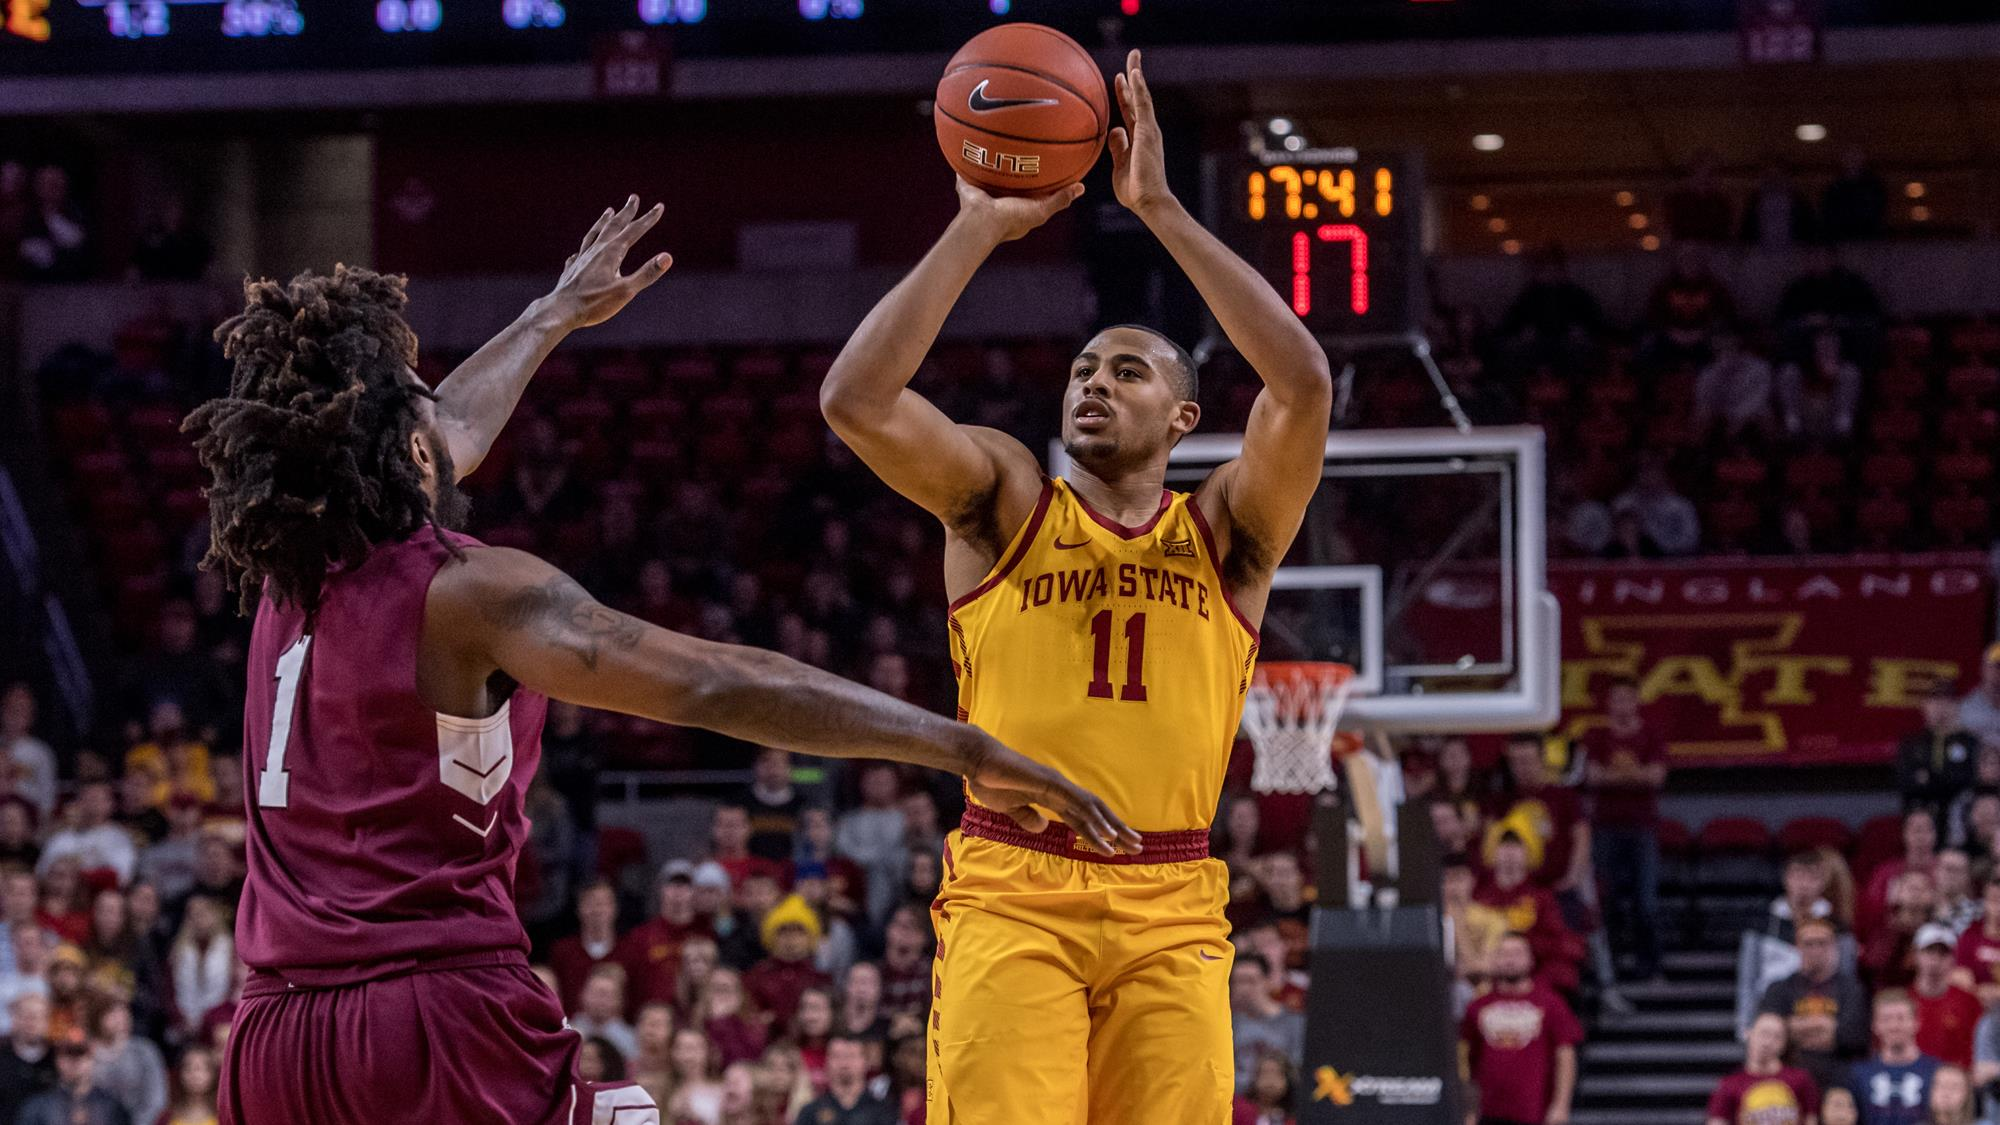 talen horton-tucker - men's basketball - iowa state university athletics